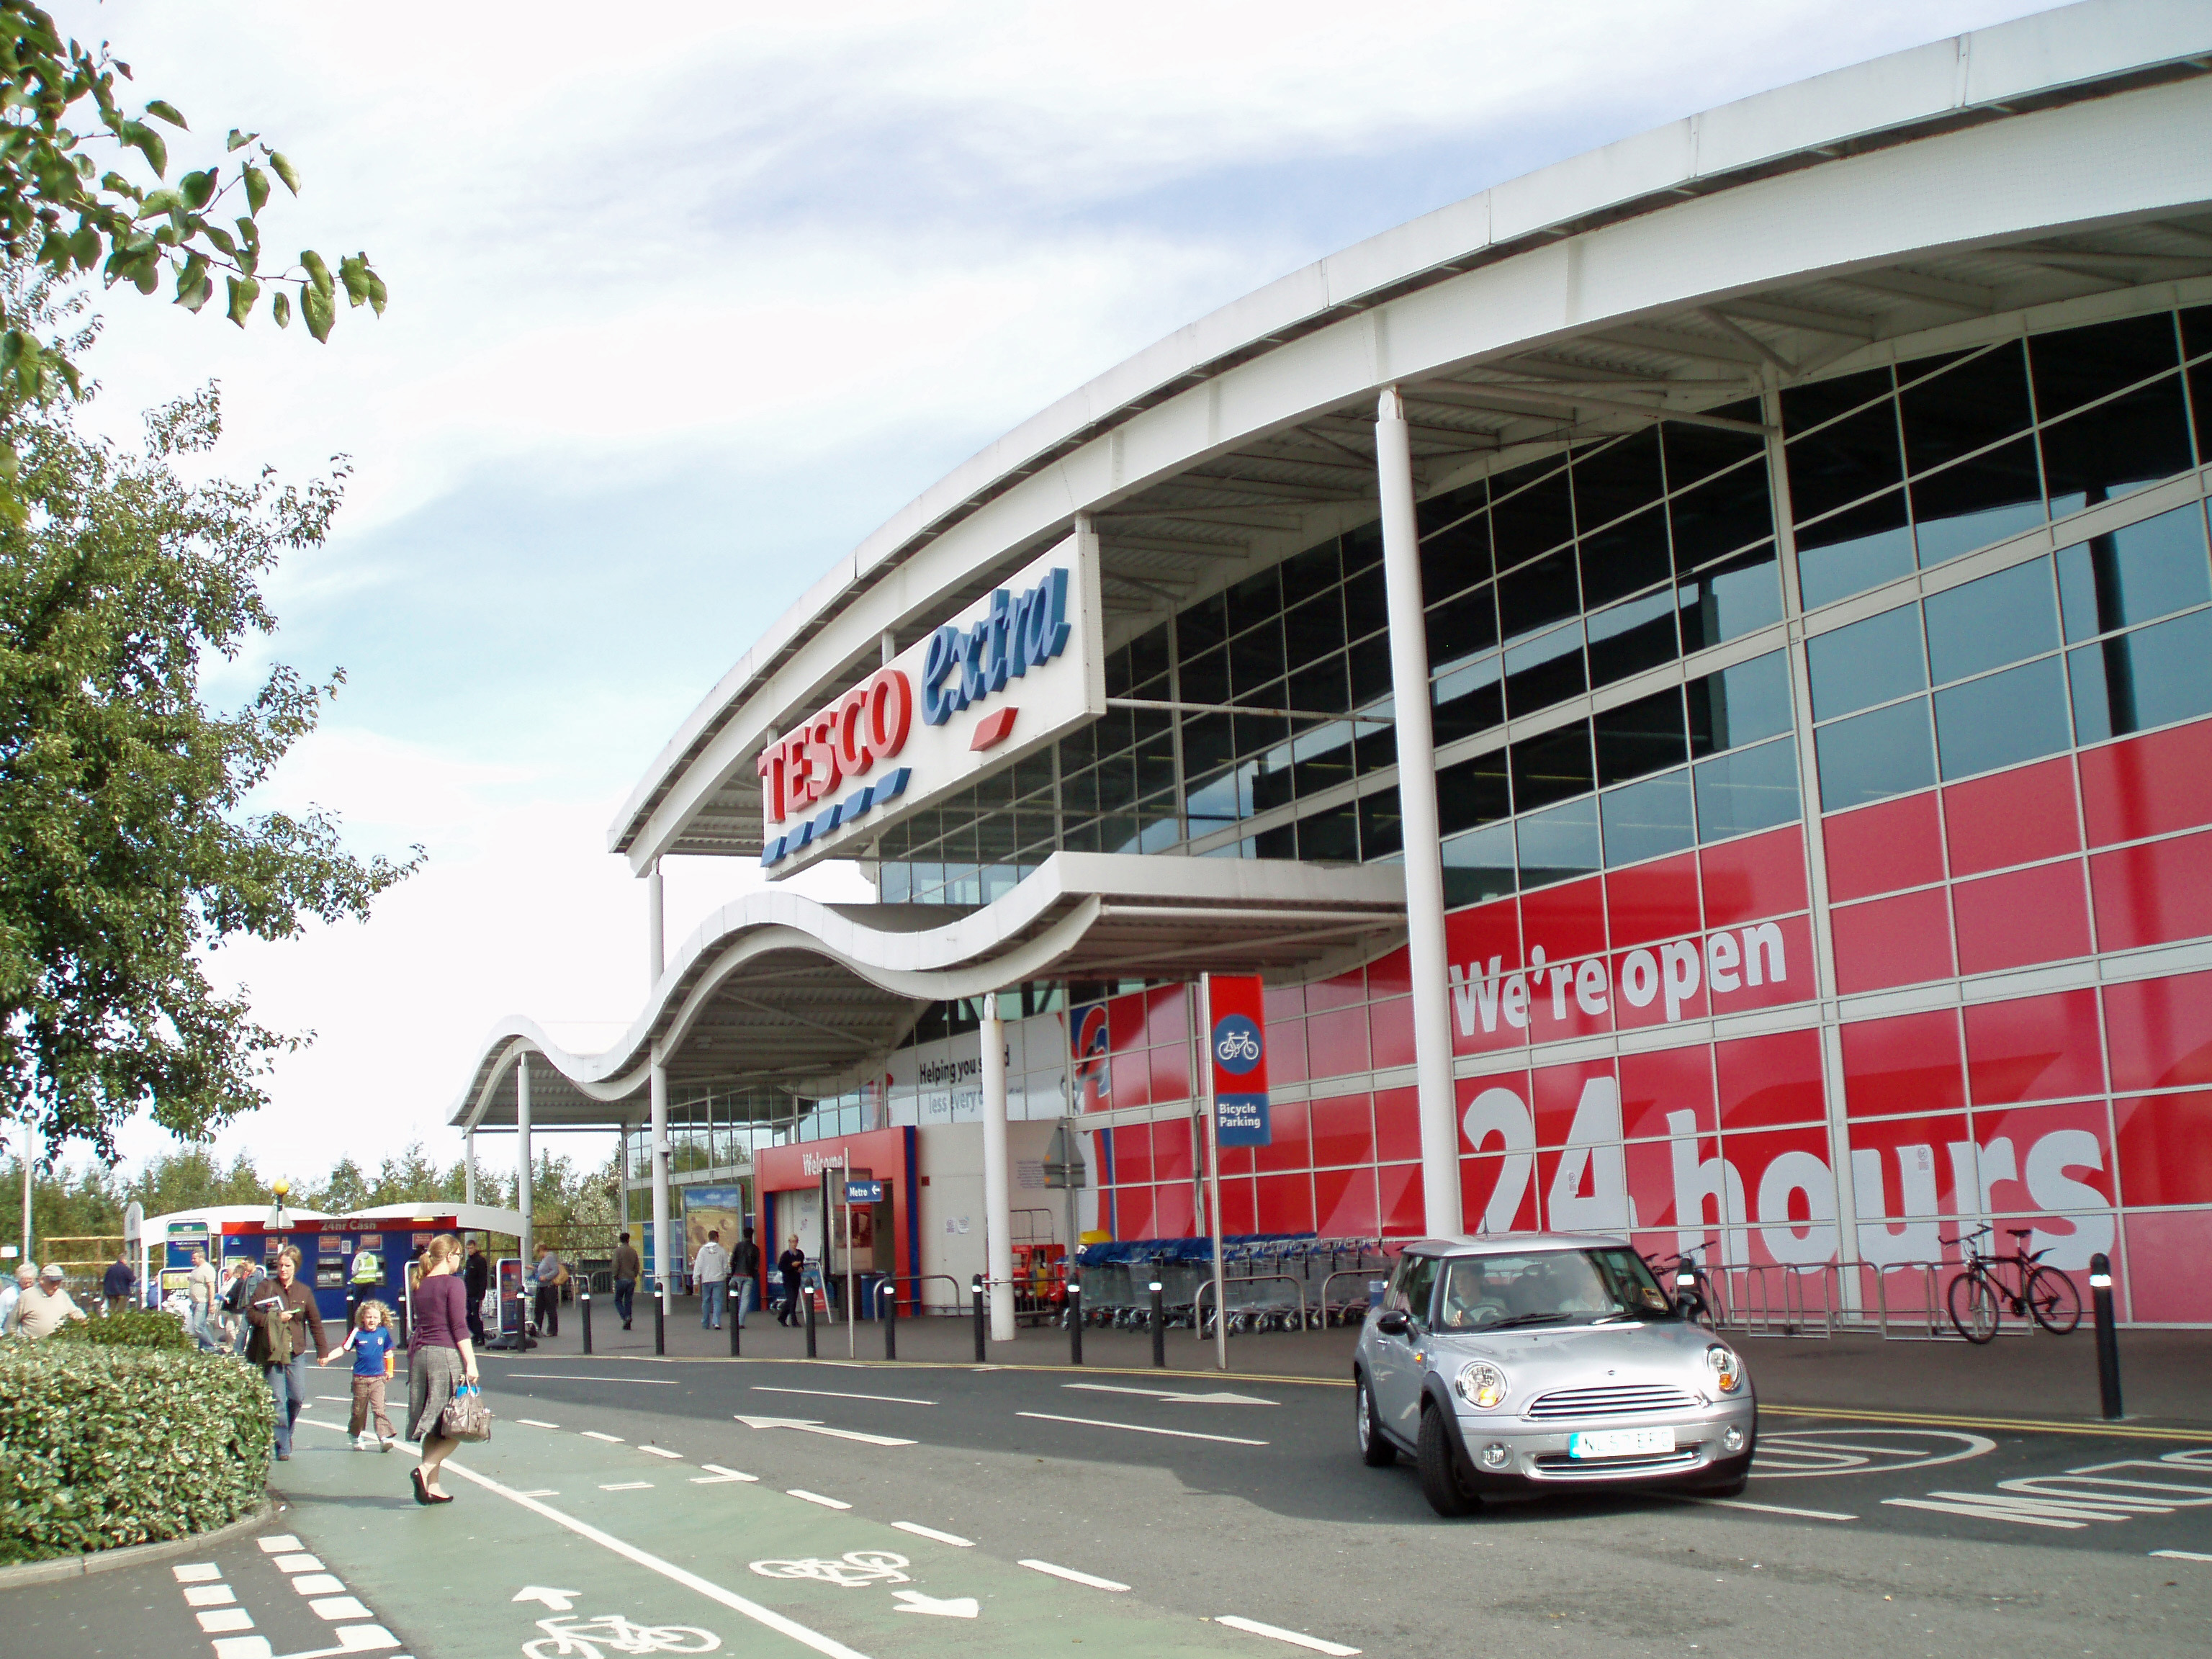 A Tesco store at Kingston Park, Newcastle upon Tyne, England.